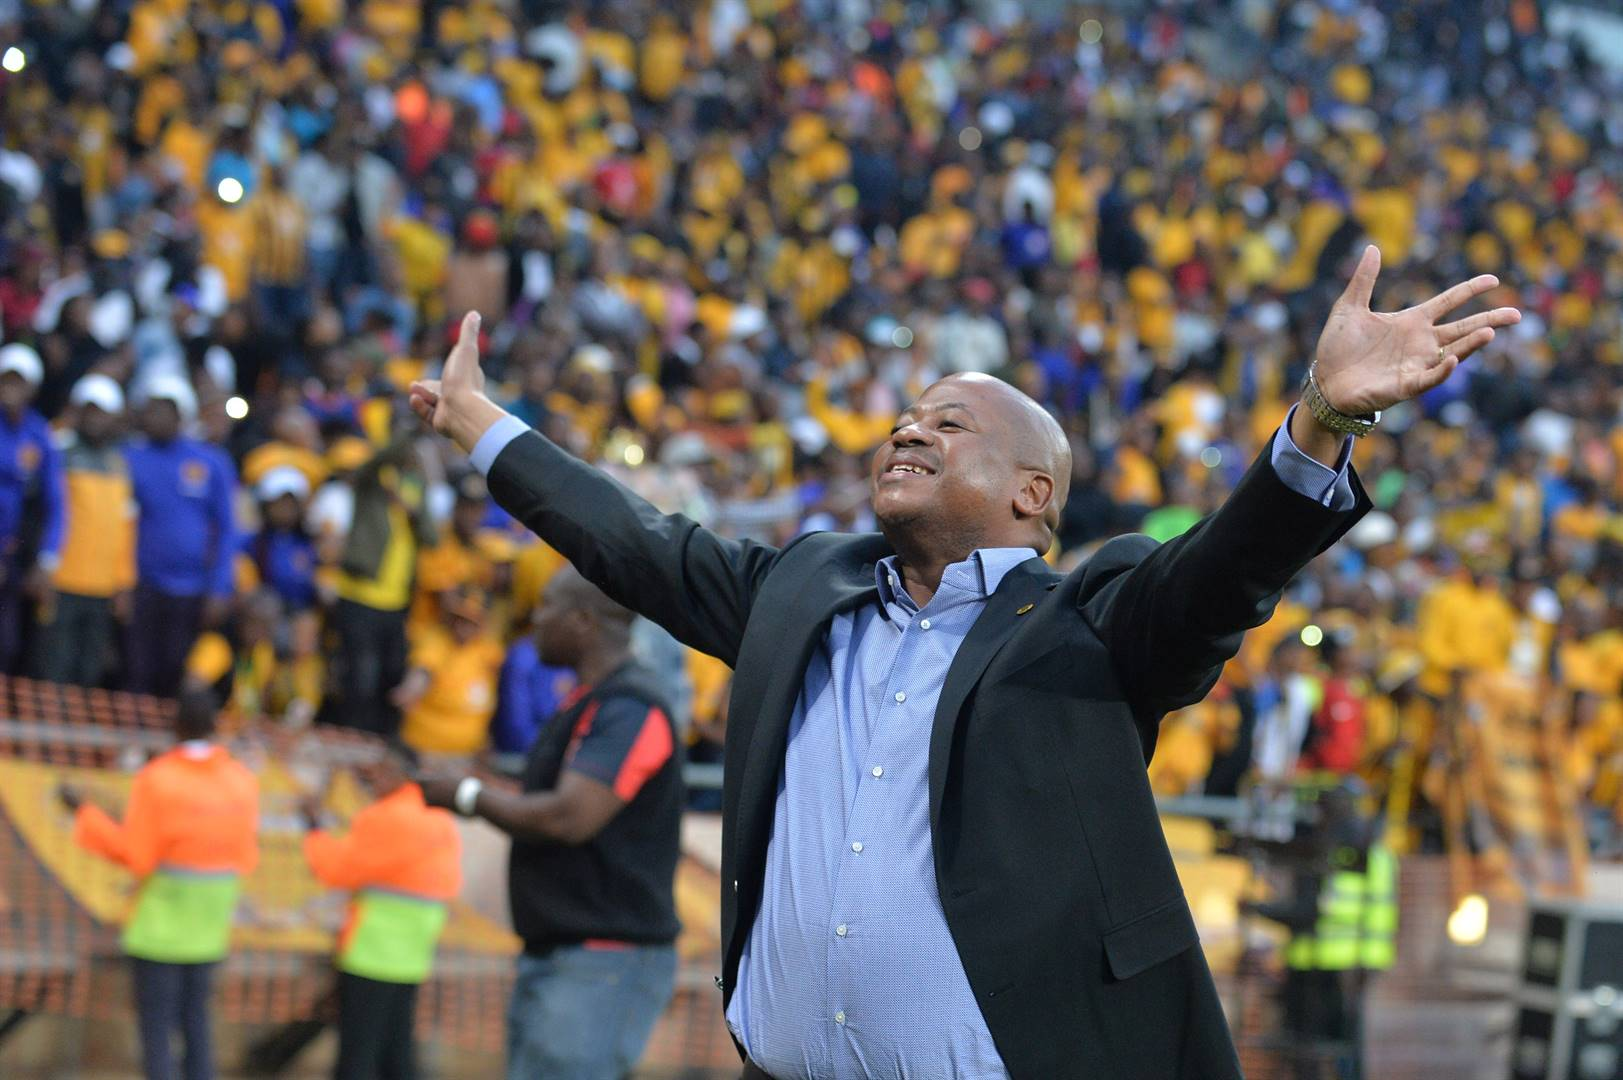 Bobby Motaung owes the public an explanation by virtue of being a public figure and being a top official at one of the most recognised football clubs, Kaizer Chiefs.  Picture: Lefty Shivambu / Gallo Images